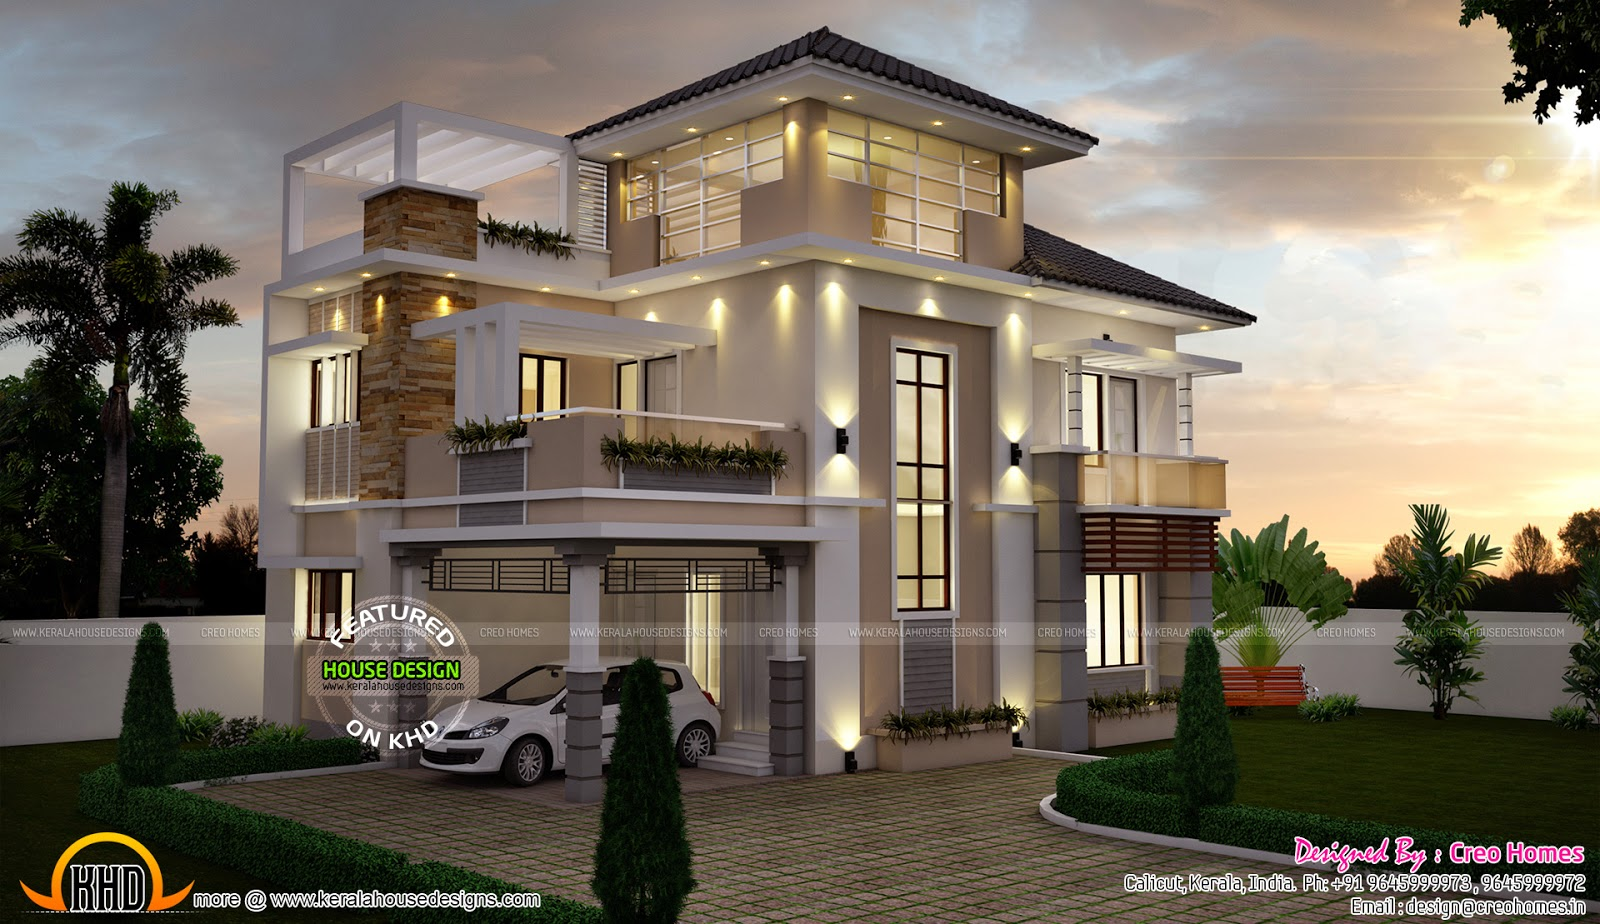 Super stylish contemporary house kerala home design and for House design modern style